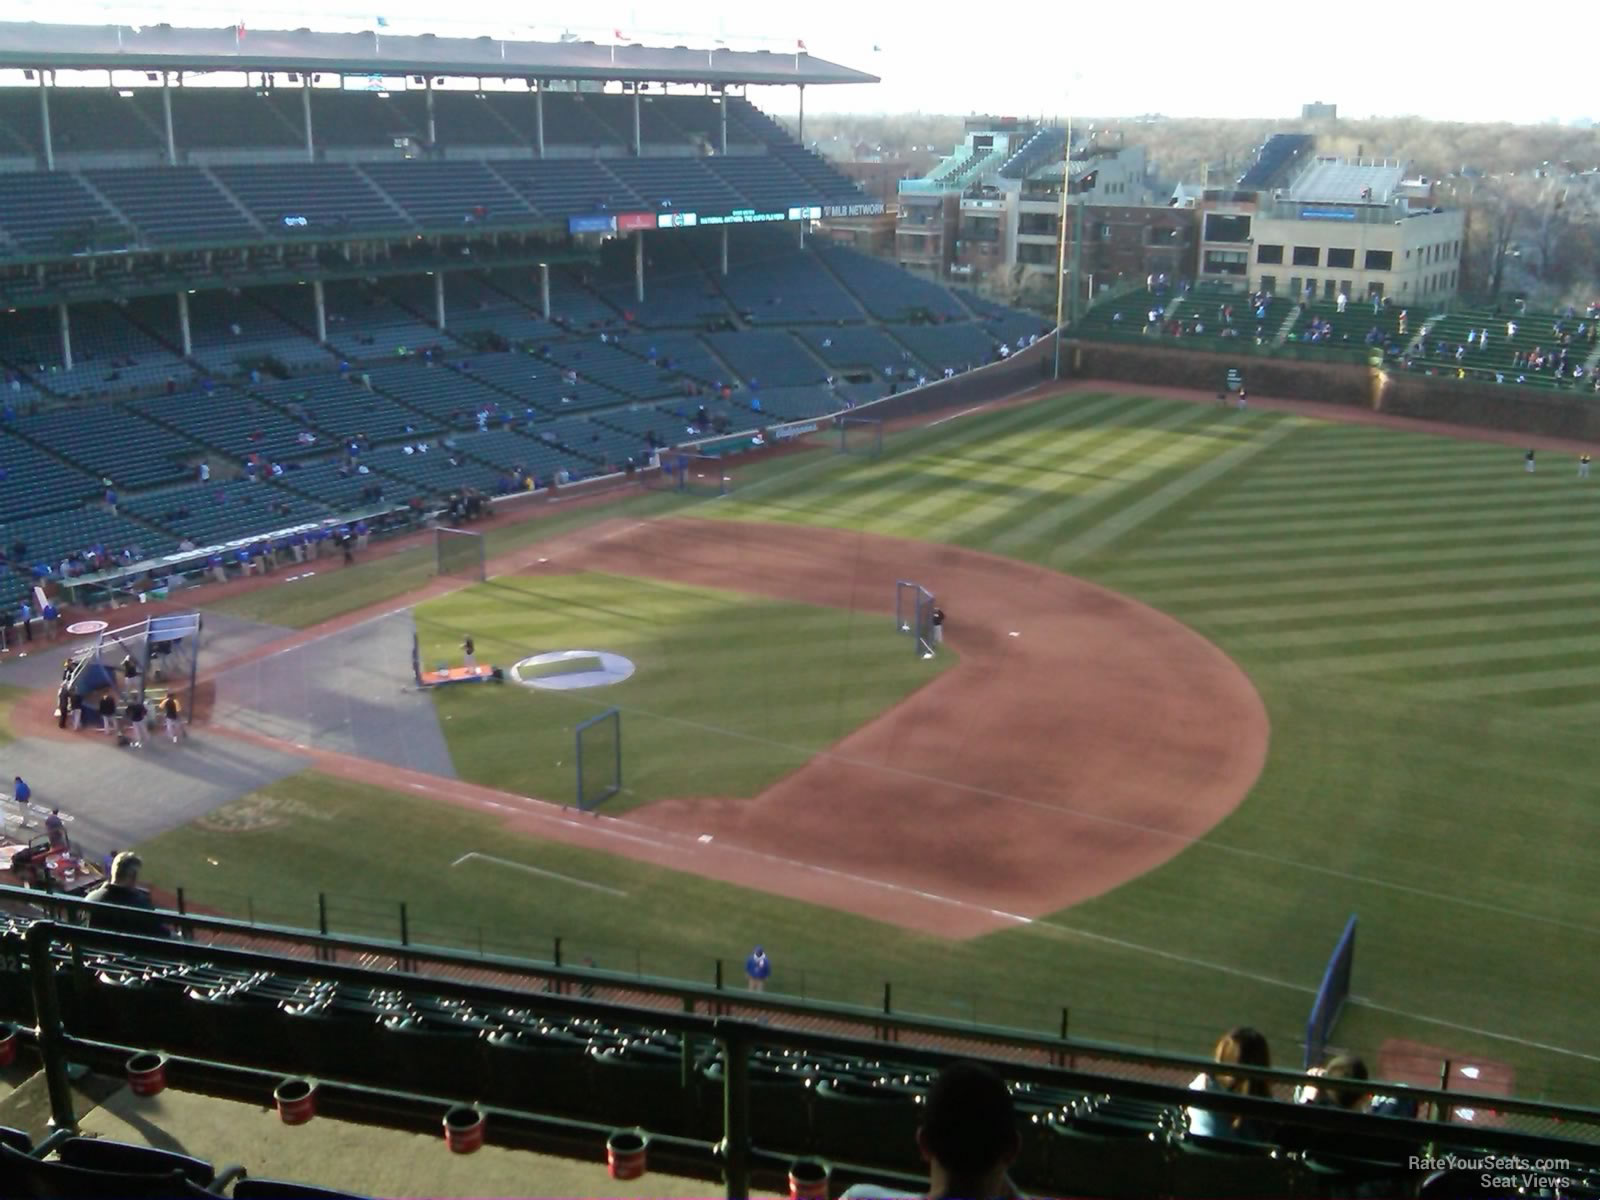 wrigley field section 532 - chicago cubs - rateyourseats